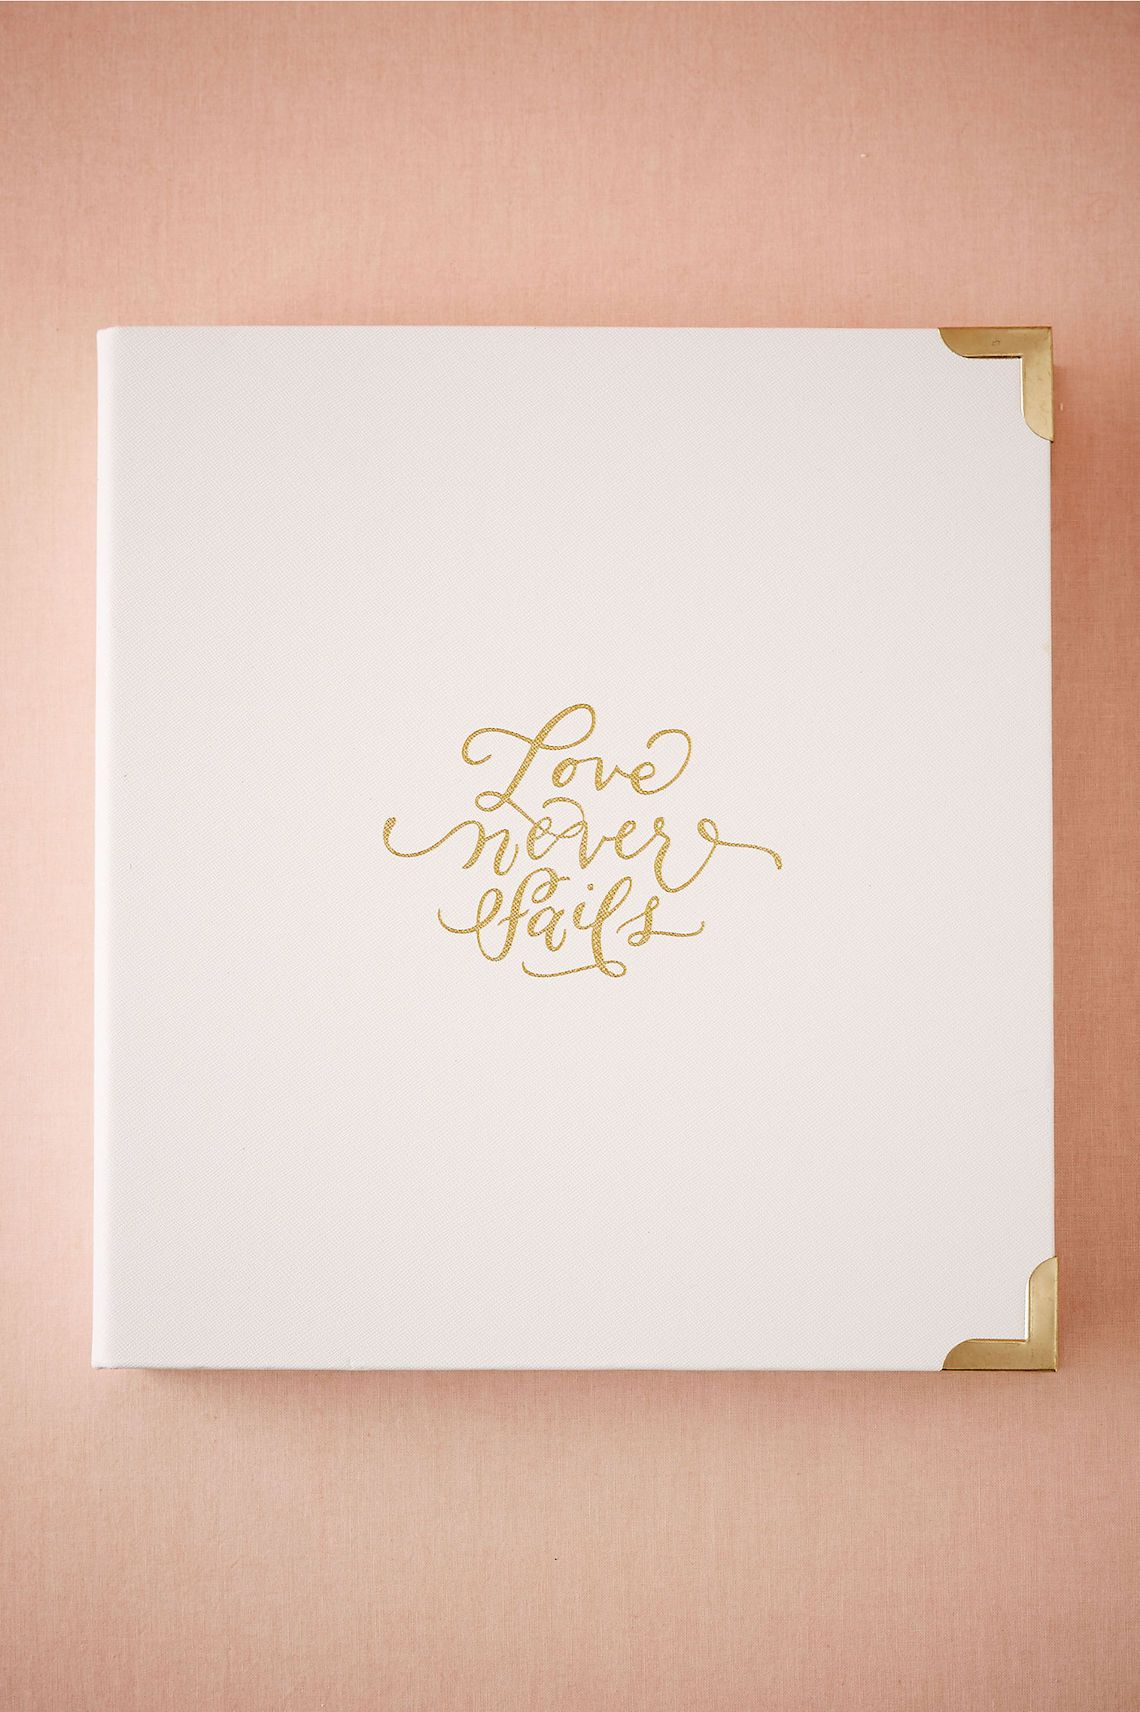 10 Of The Best Wedding Planners Organisers Journals Wedding Organizer Planner Wedding Planner Book Best Wedding Planner